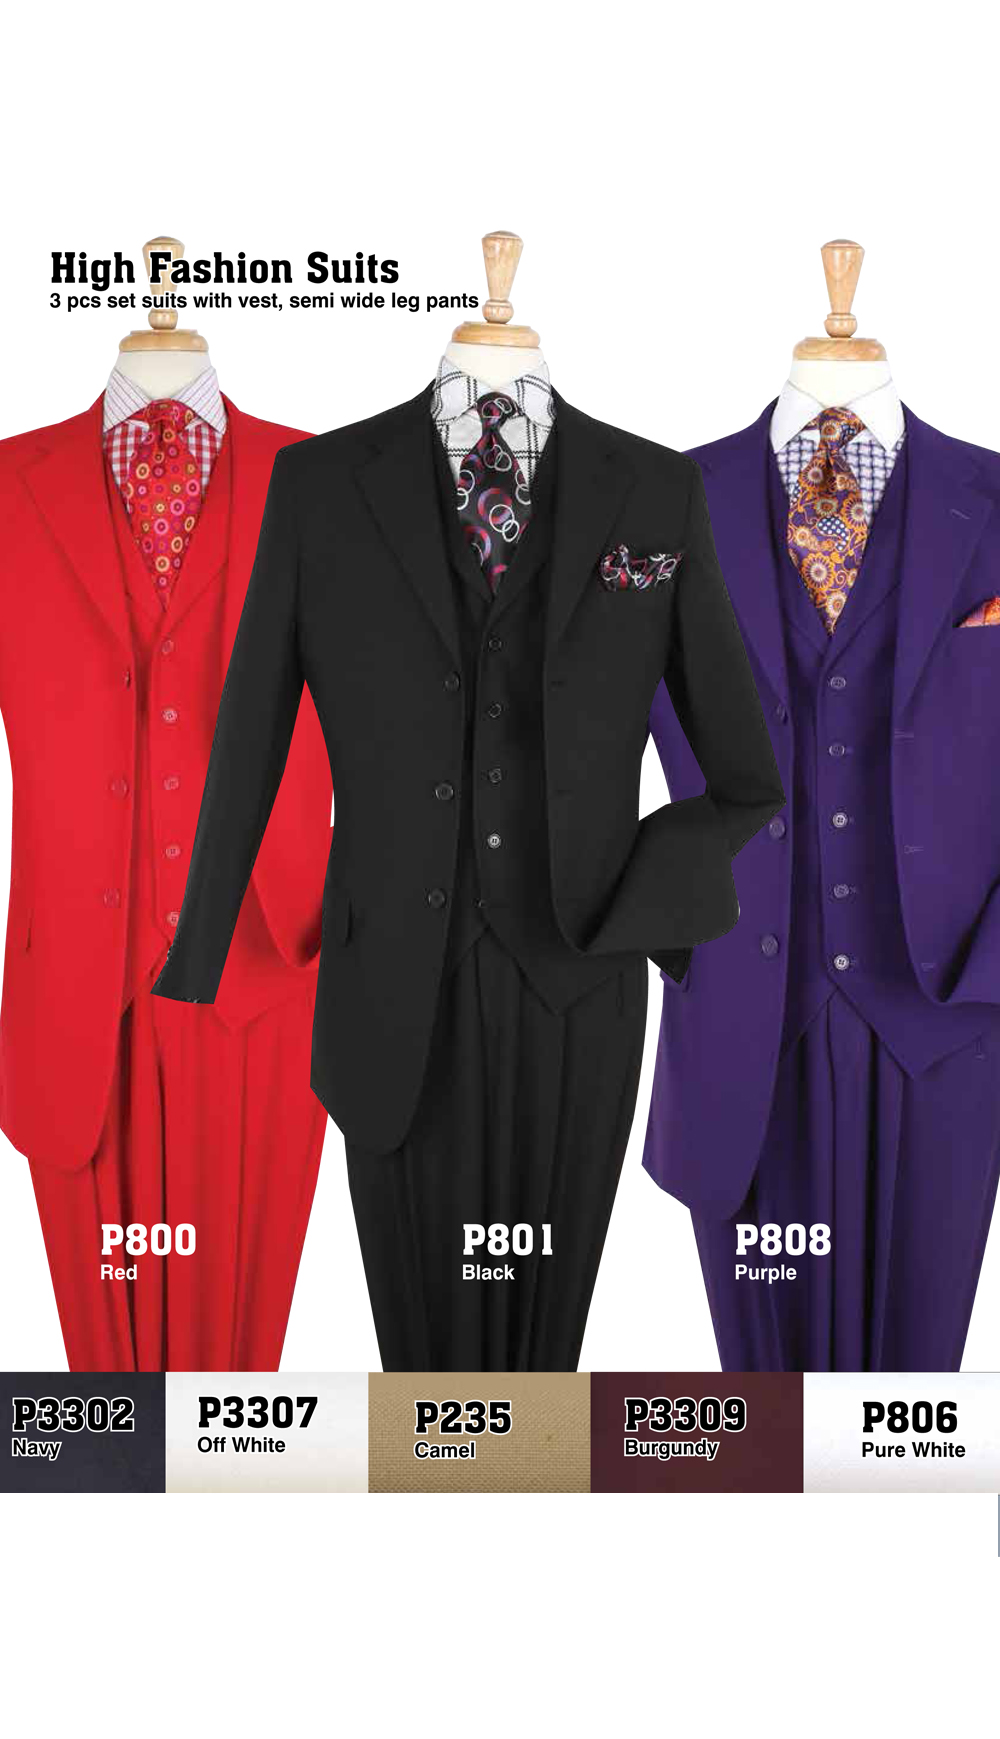 High Fashion Men Suits P800